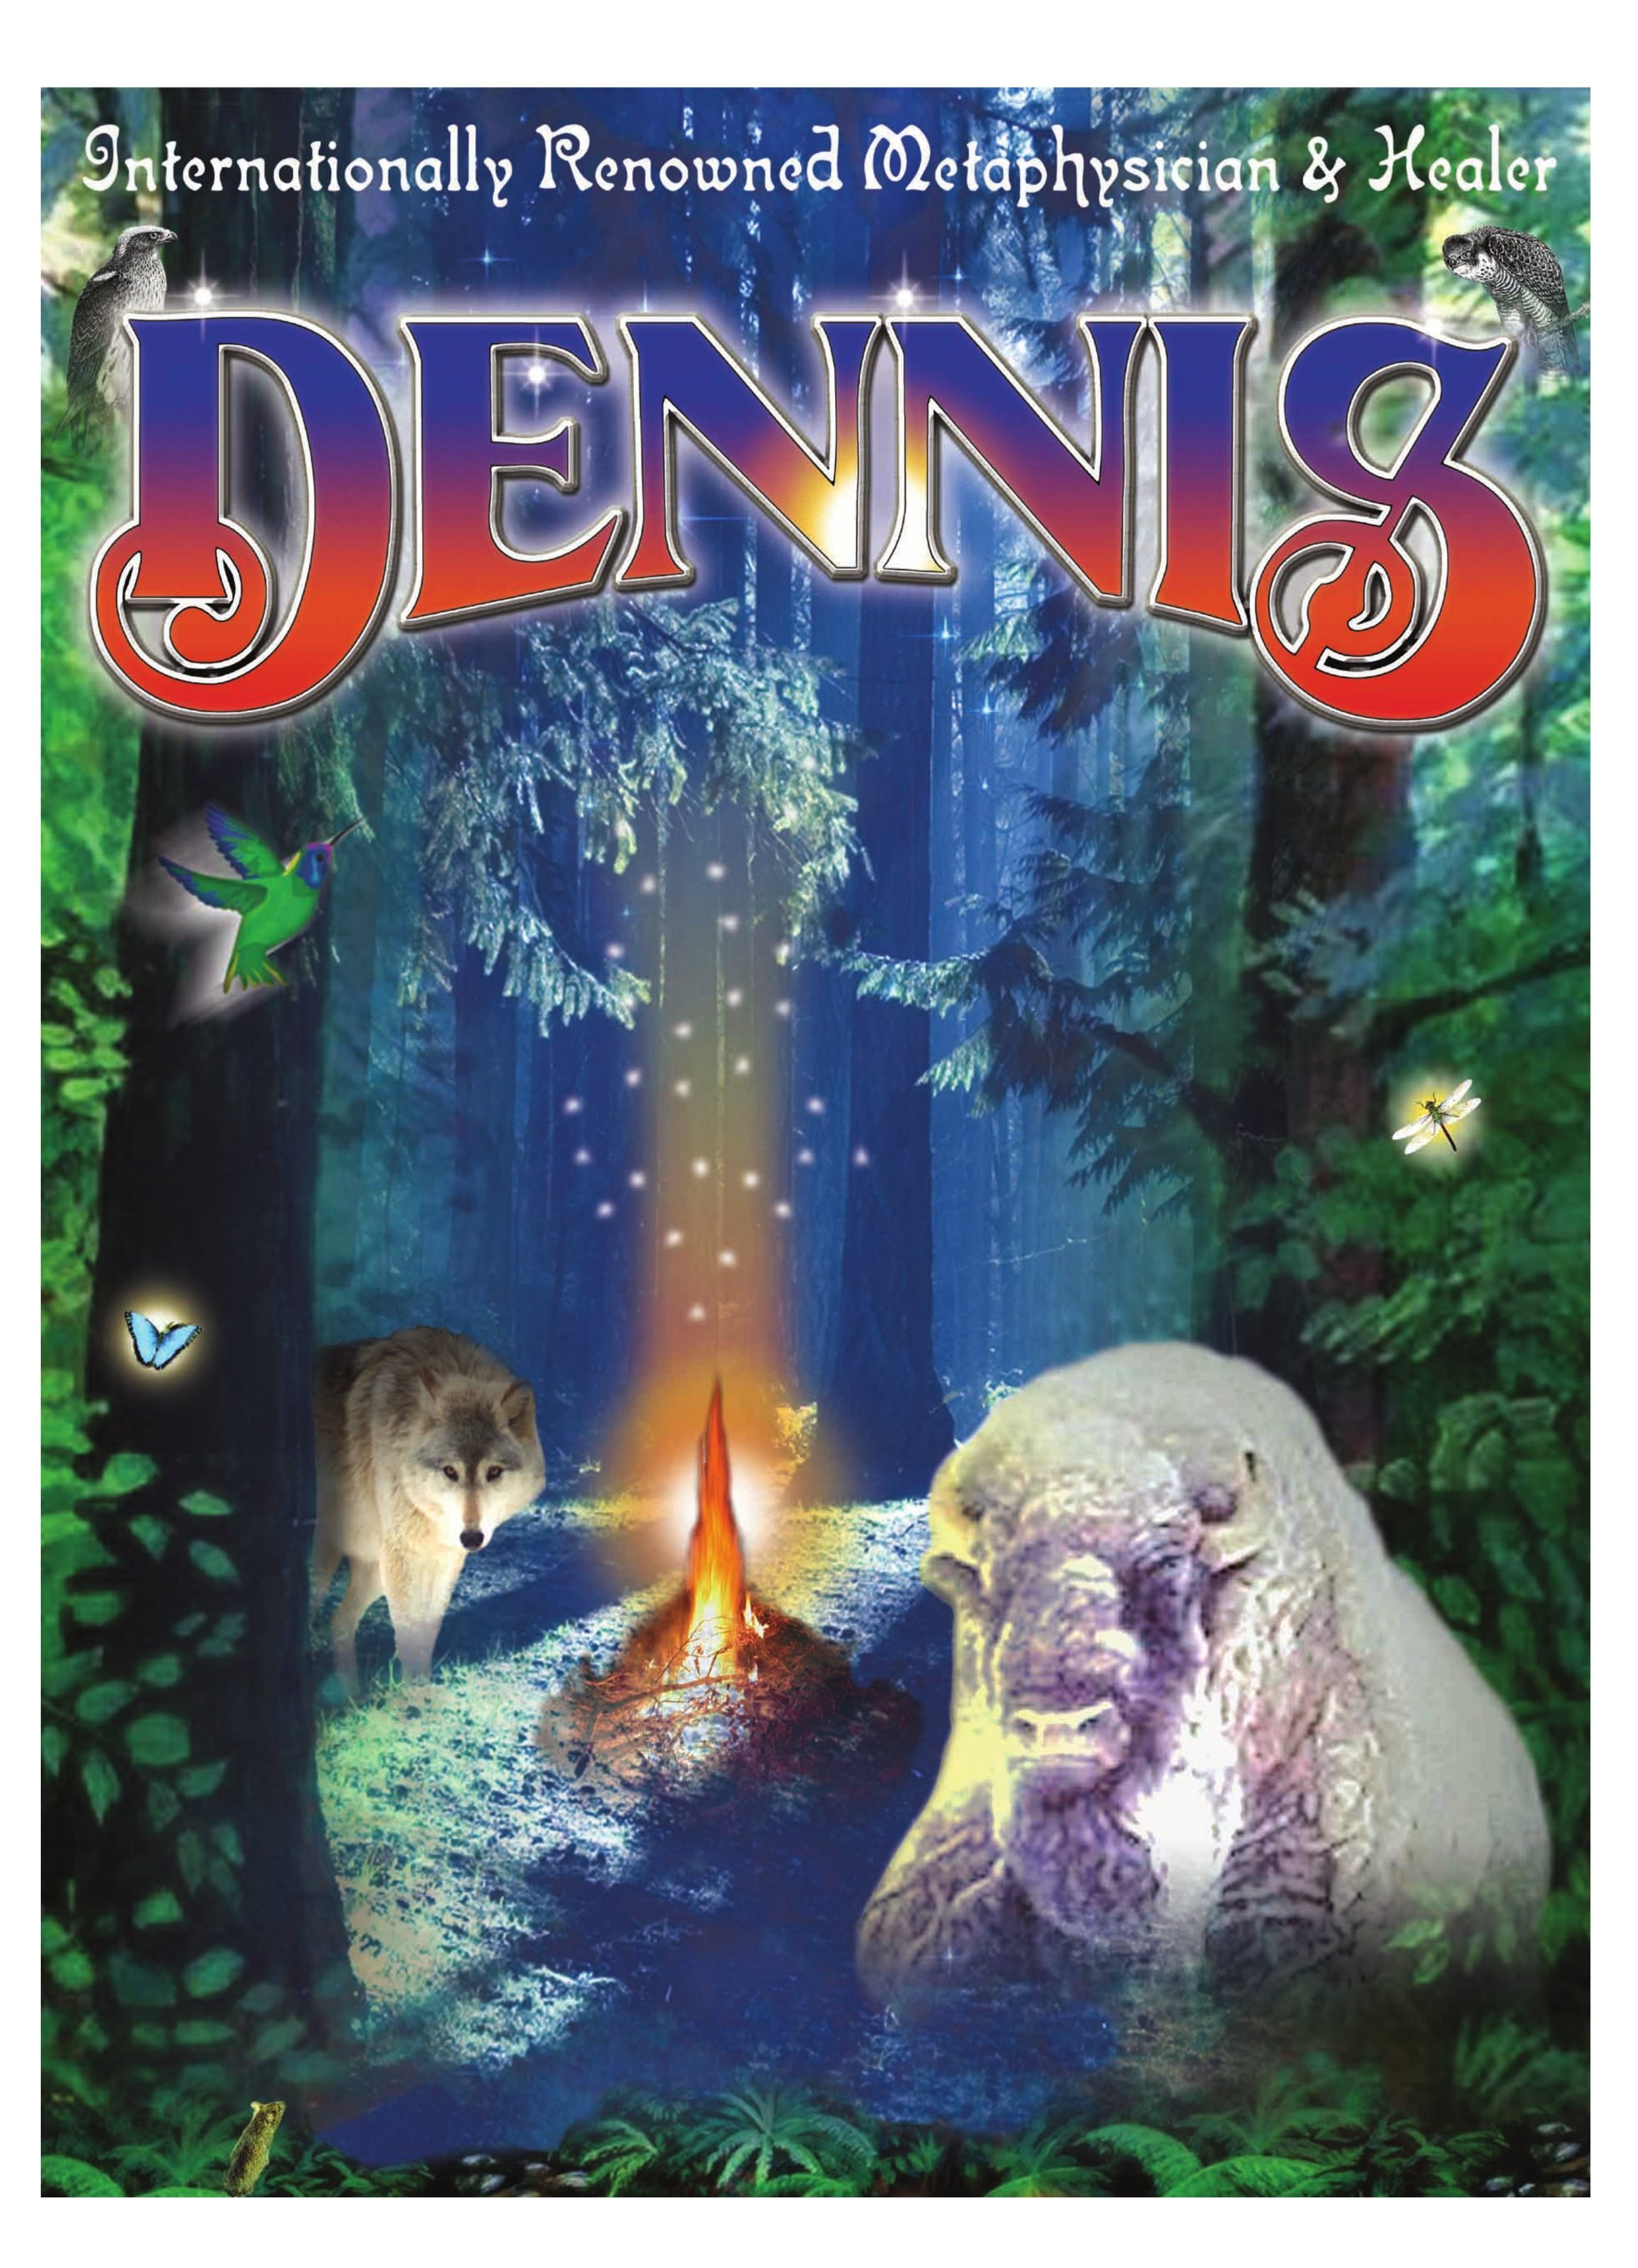 Welcome to Psychic Dennis Morley